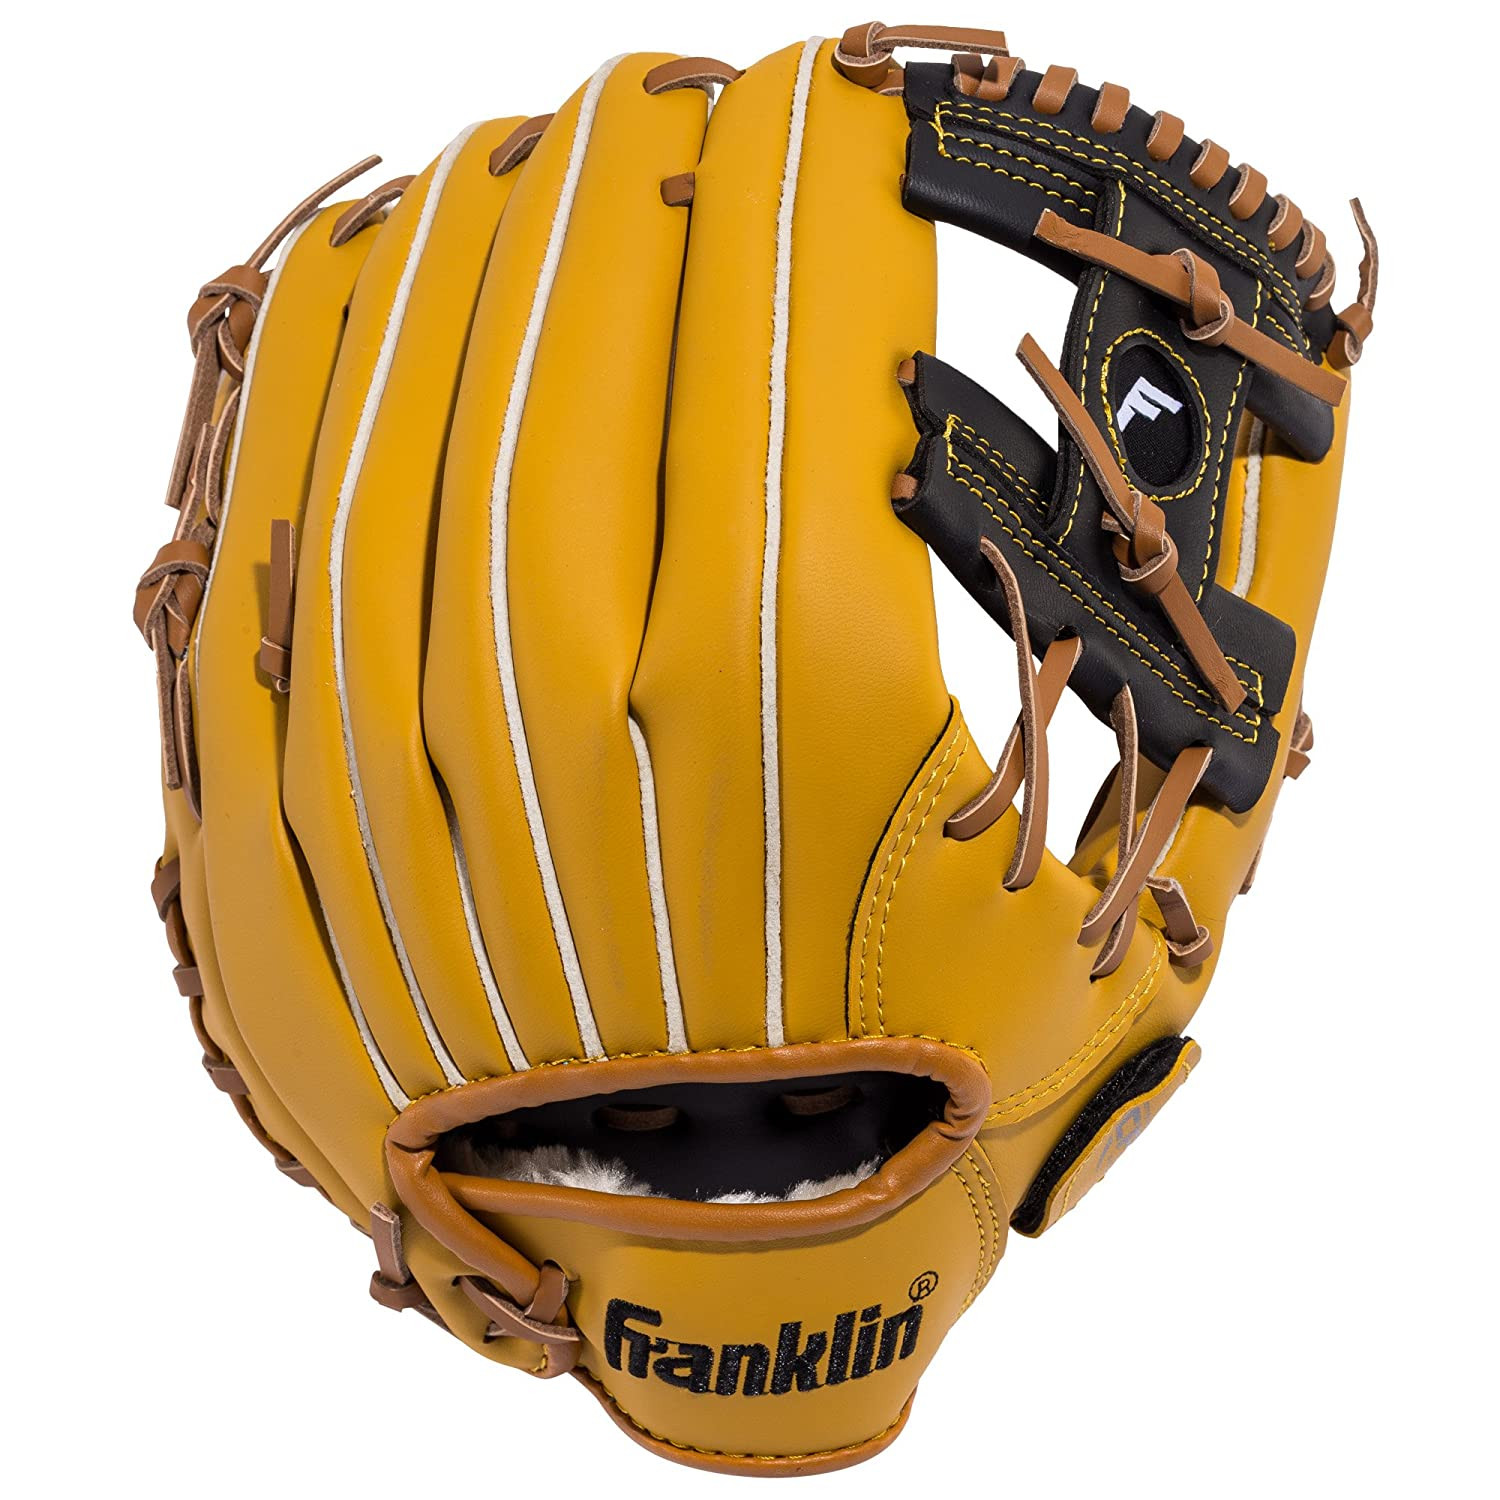 Franklin Sports Field Master Series Baseball Gloves Inc. 22600